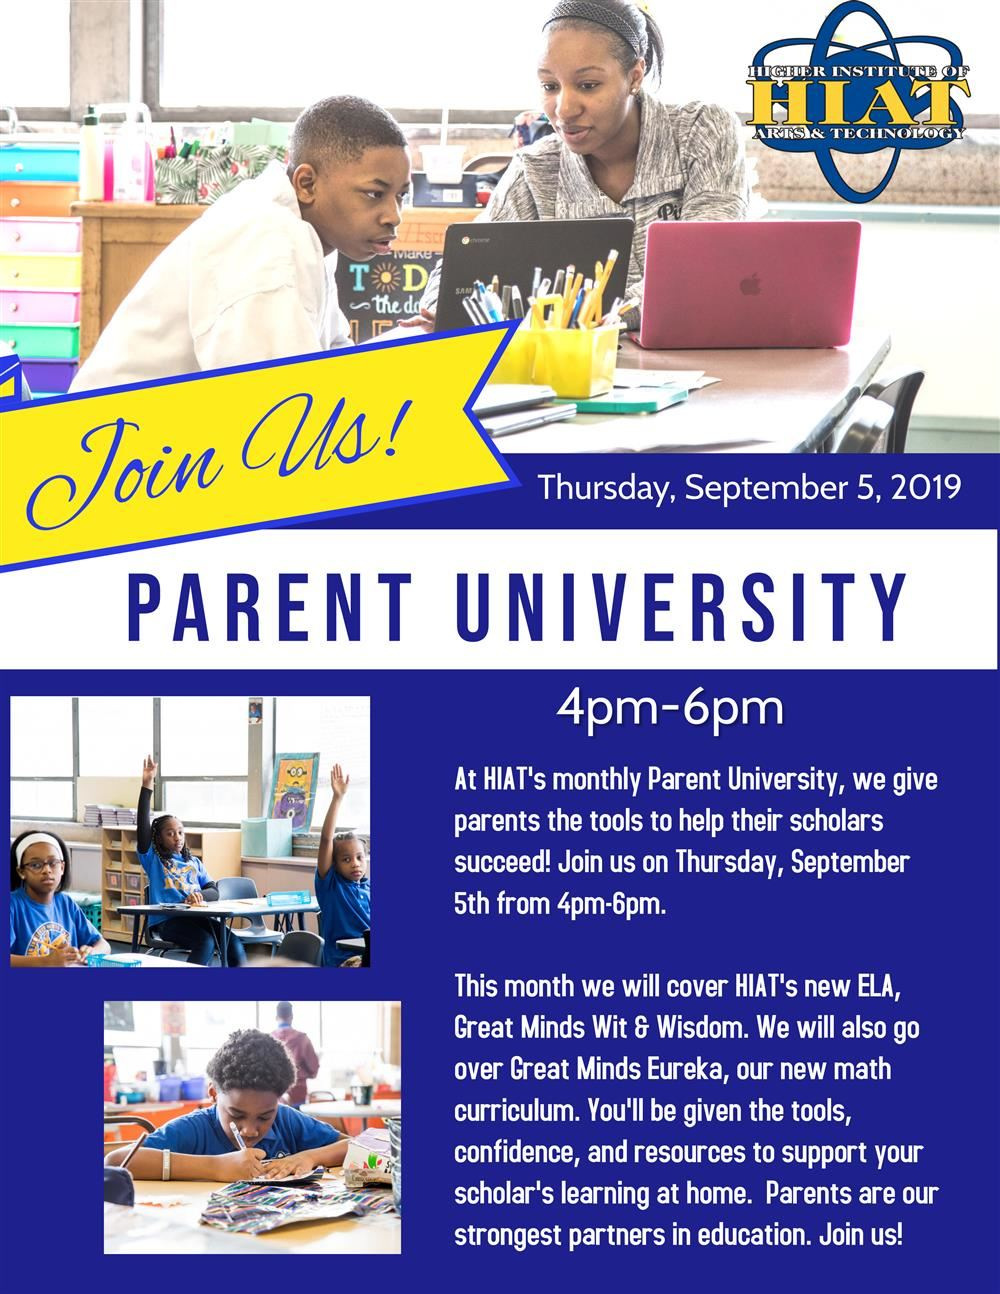 HIAT Parent University Sept 5th, 2019